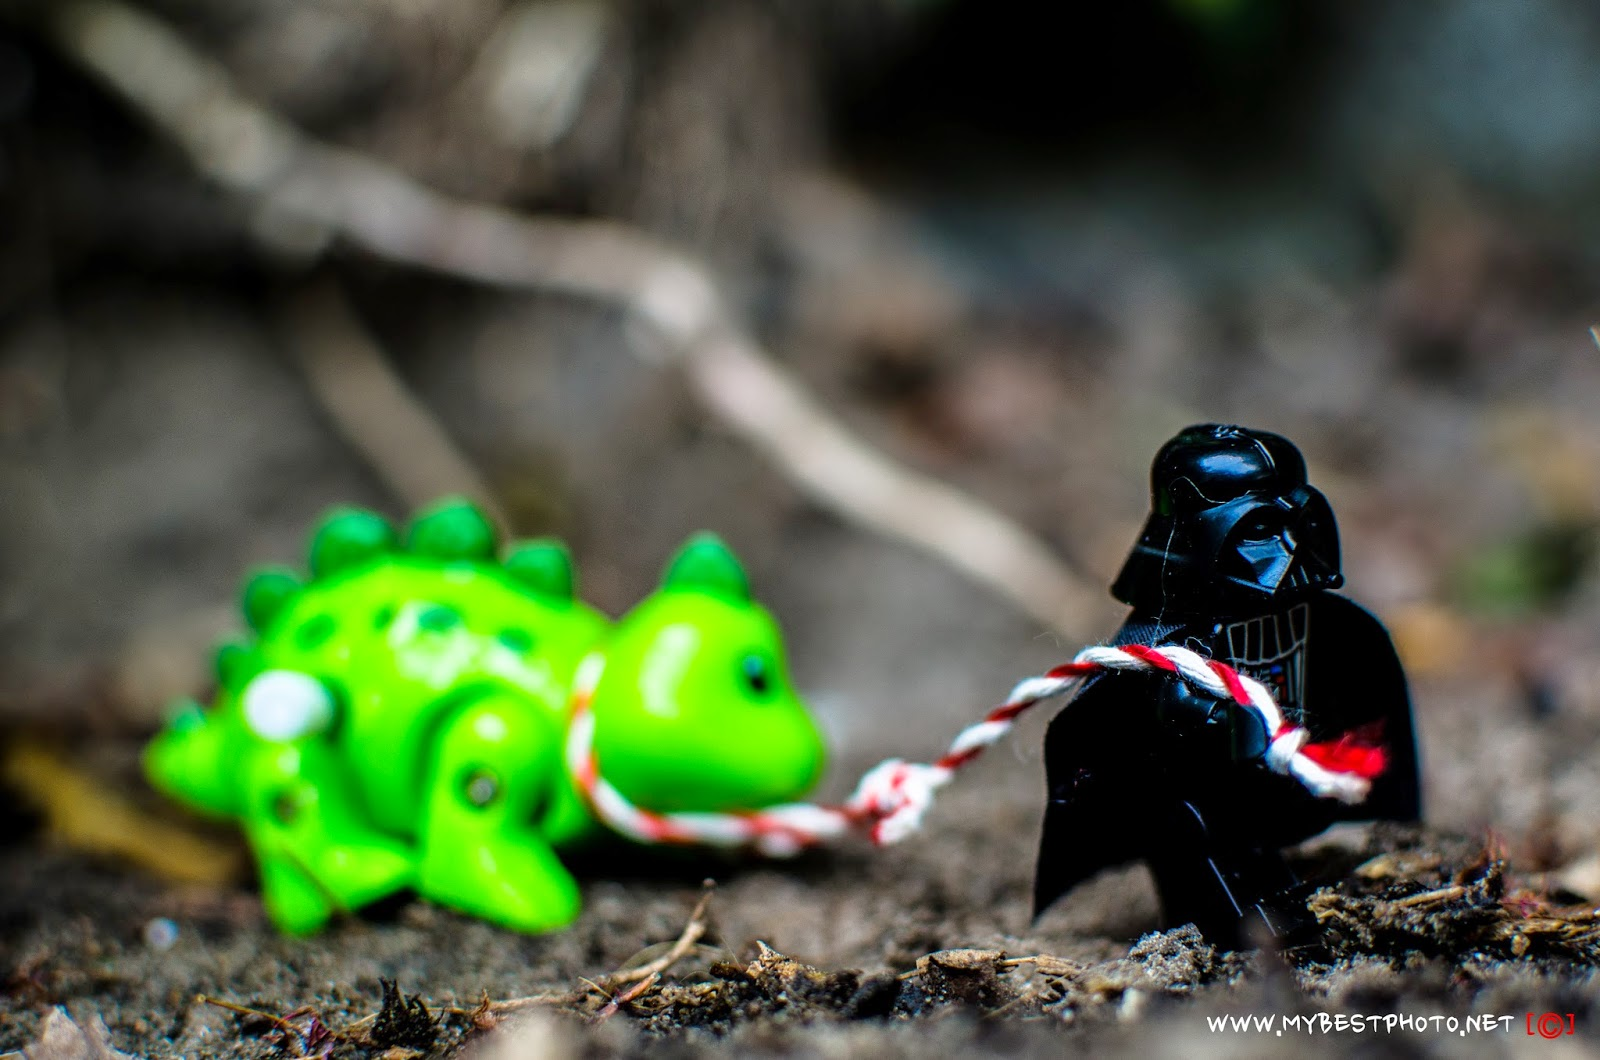 Lego Minifigure Star Wars Darth Vader & Dino - Wallpaper